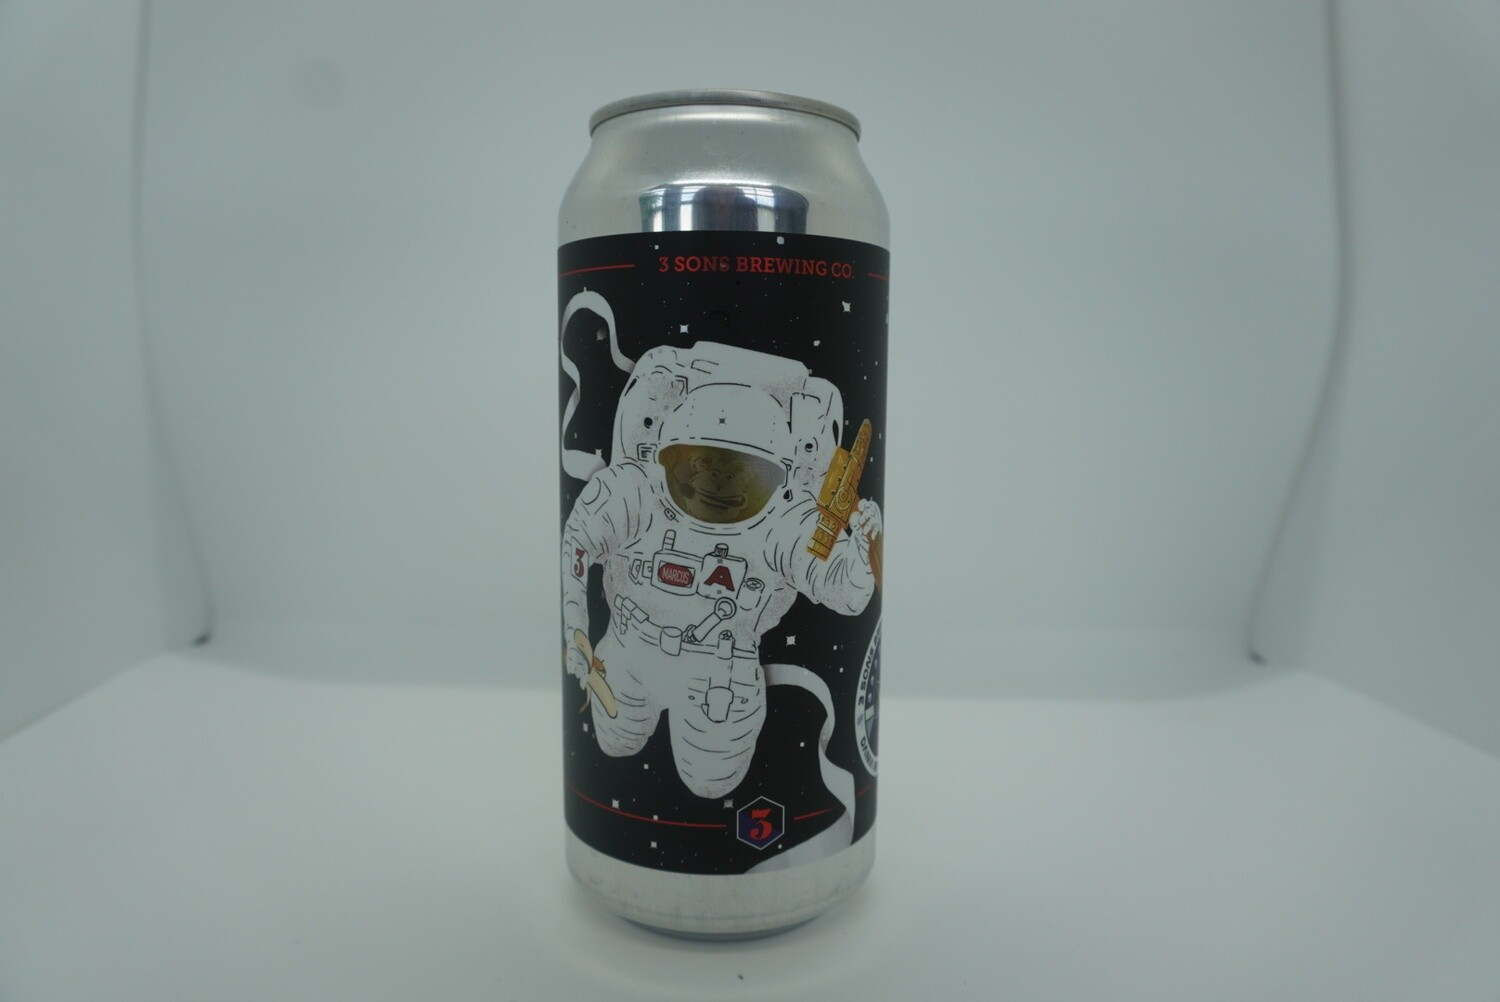 3 Sons - Intergalactic Chimpstronaut - DIPA - 8.1% ABV - 16oz Can